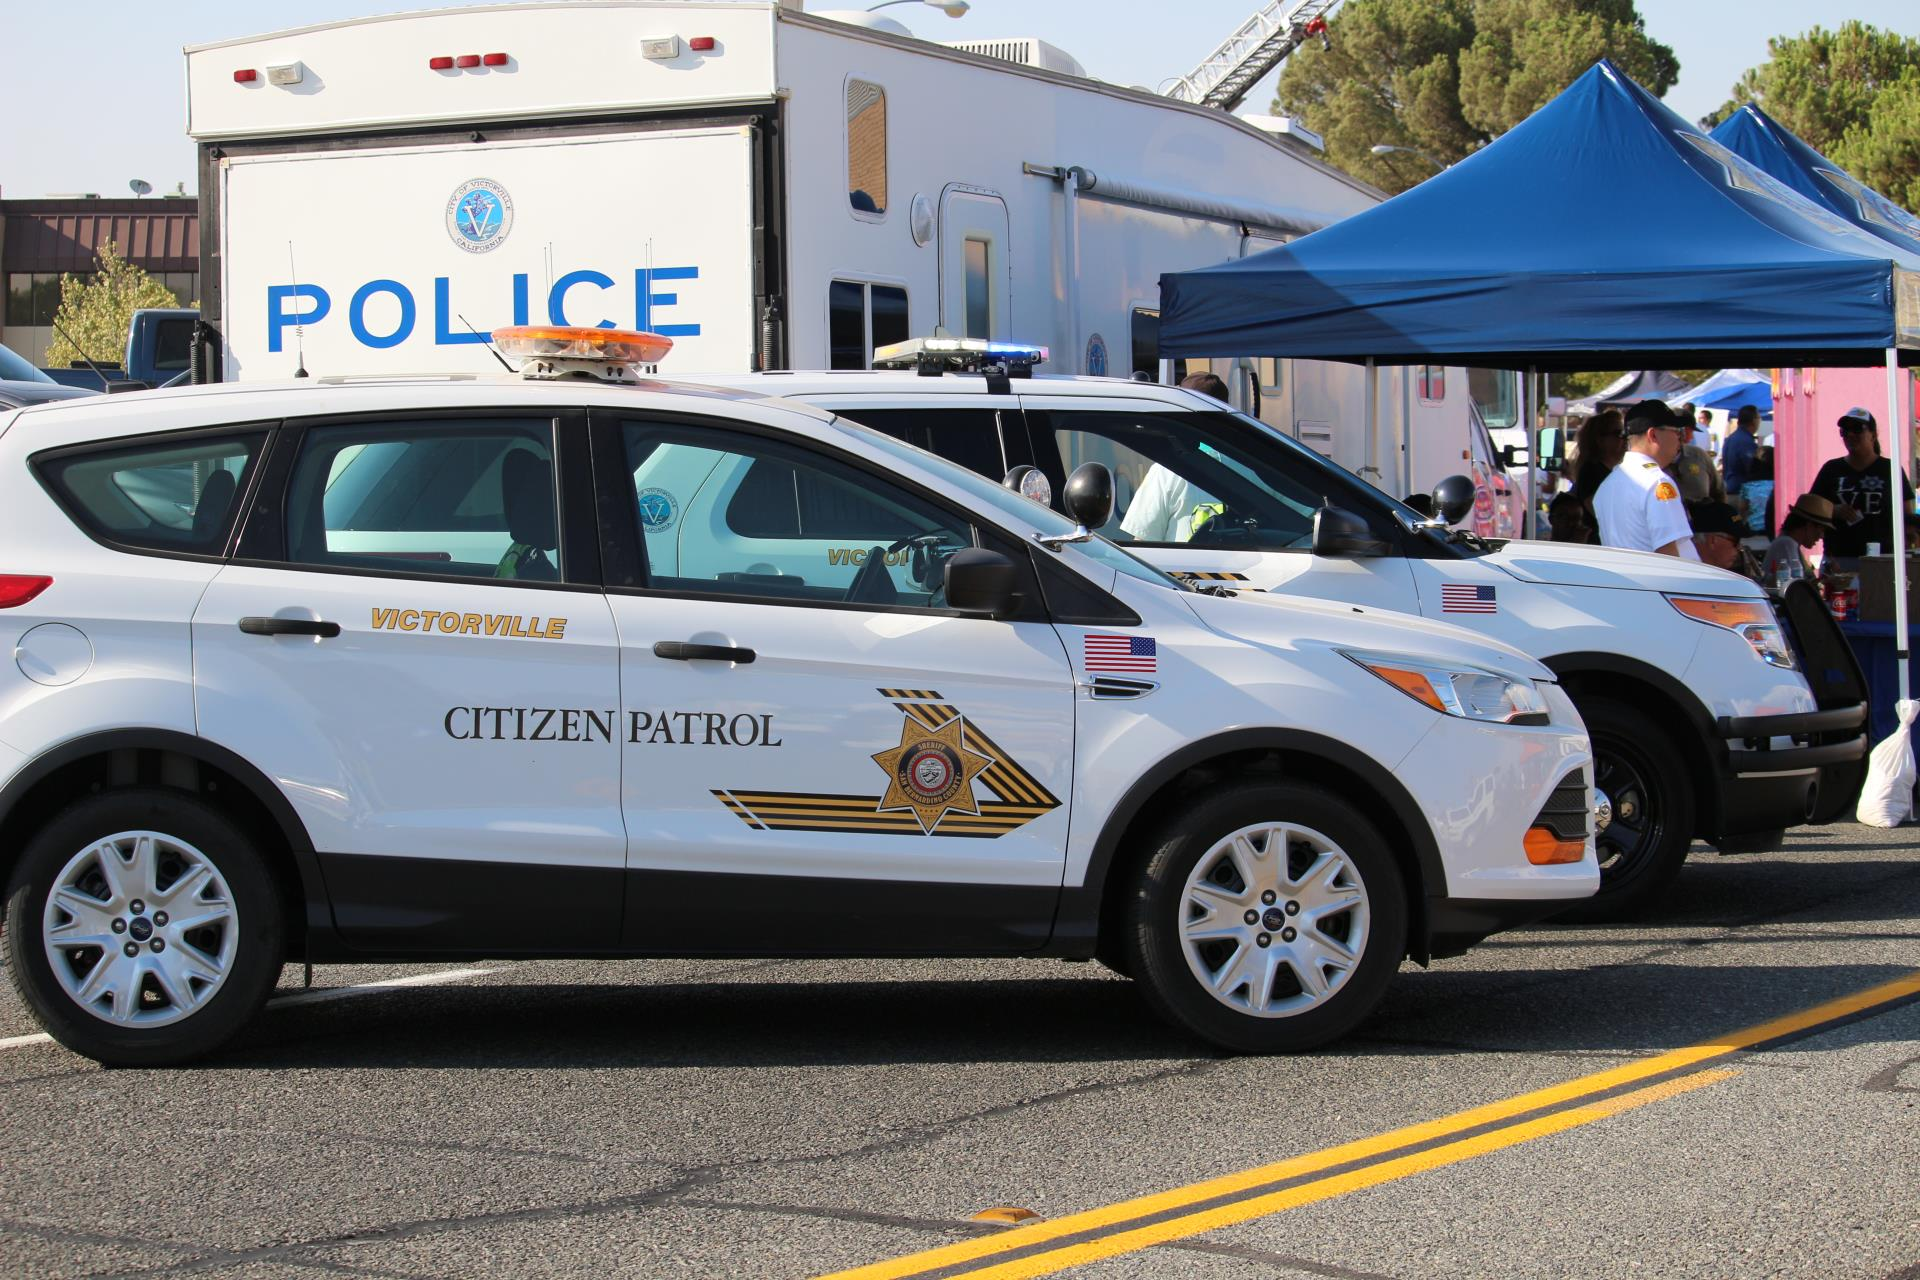 Citizen on Patrol Vehicles at National Night Out Event